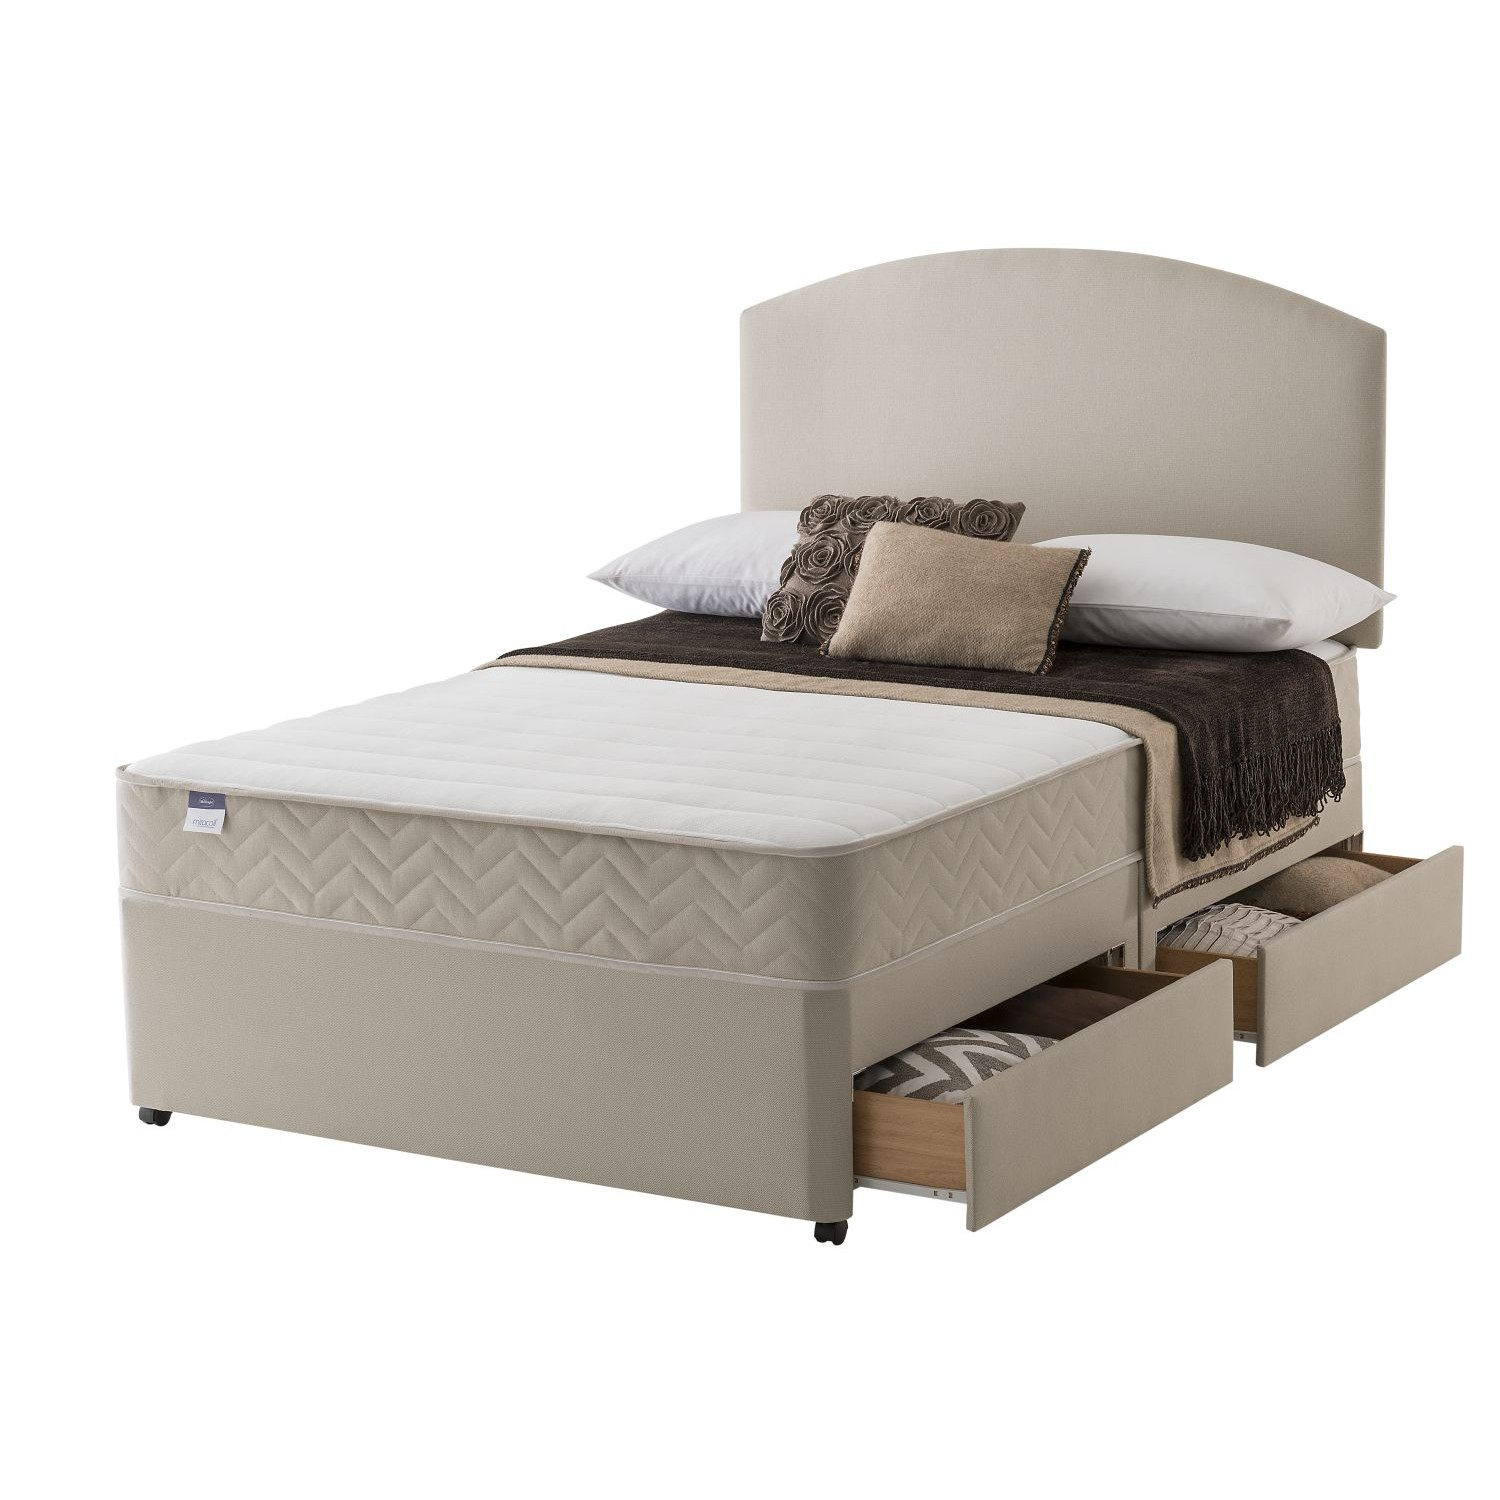 Silentnight vienna platform top 4 drawer divan set small dou for Small double divan set